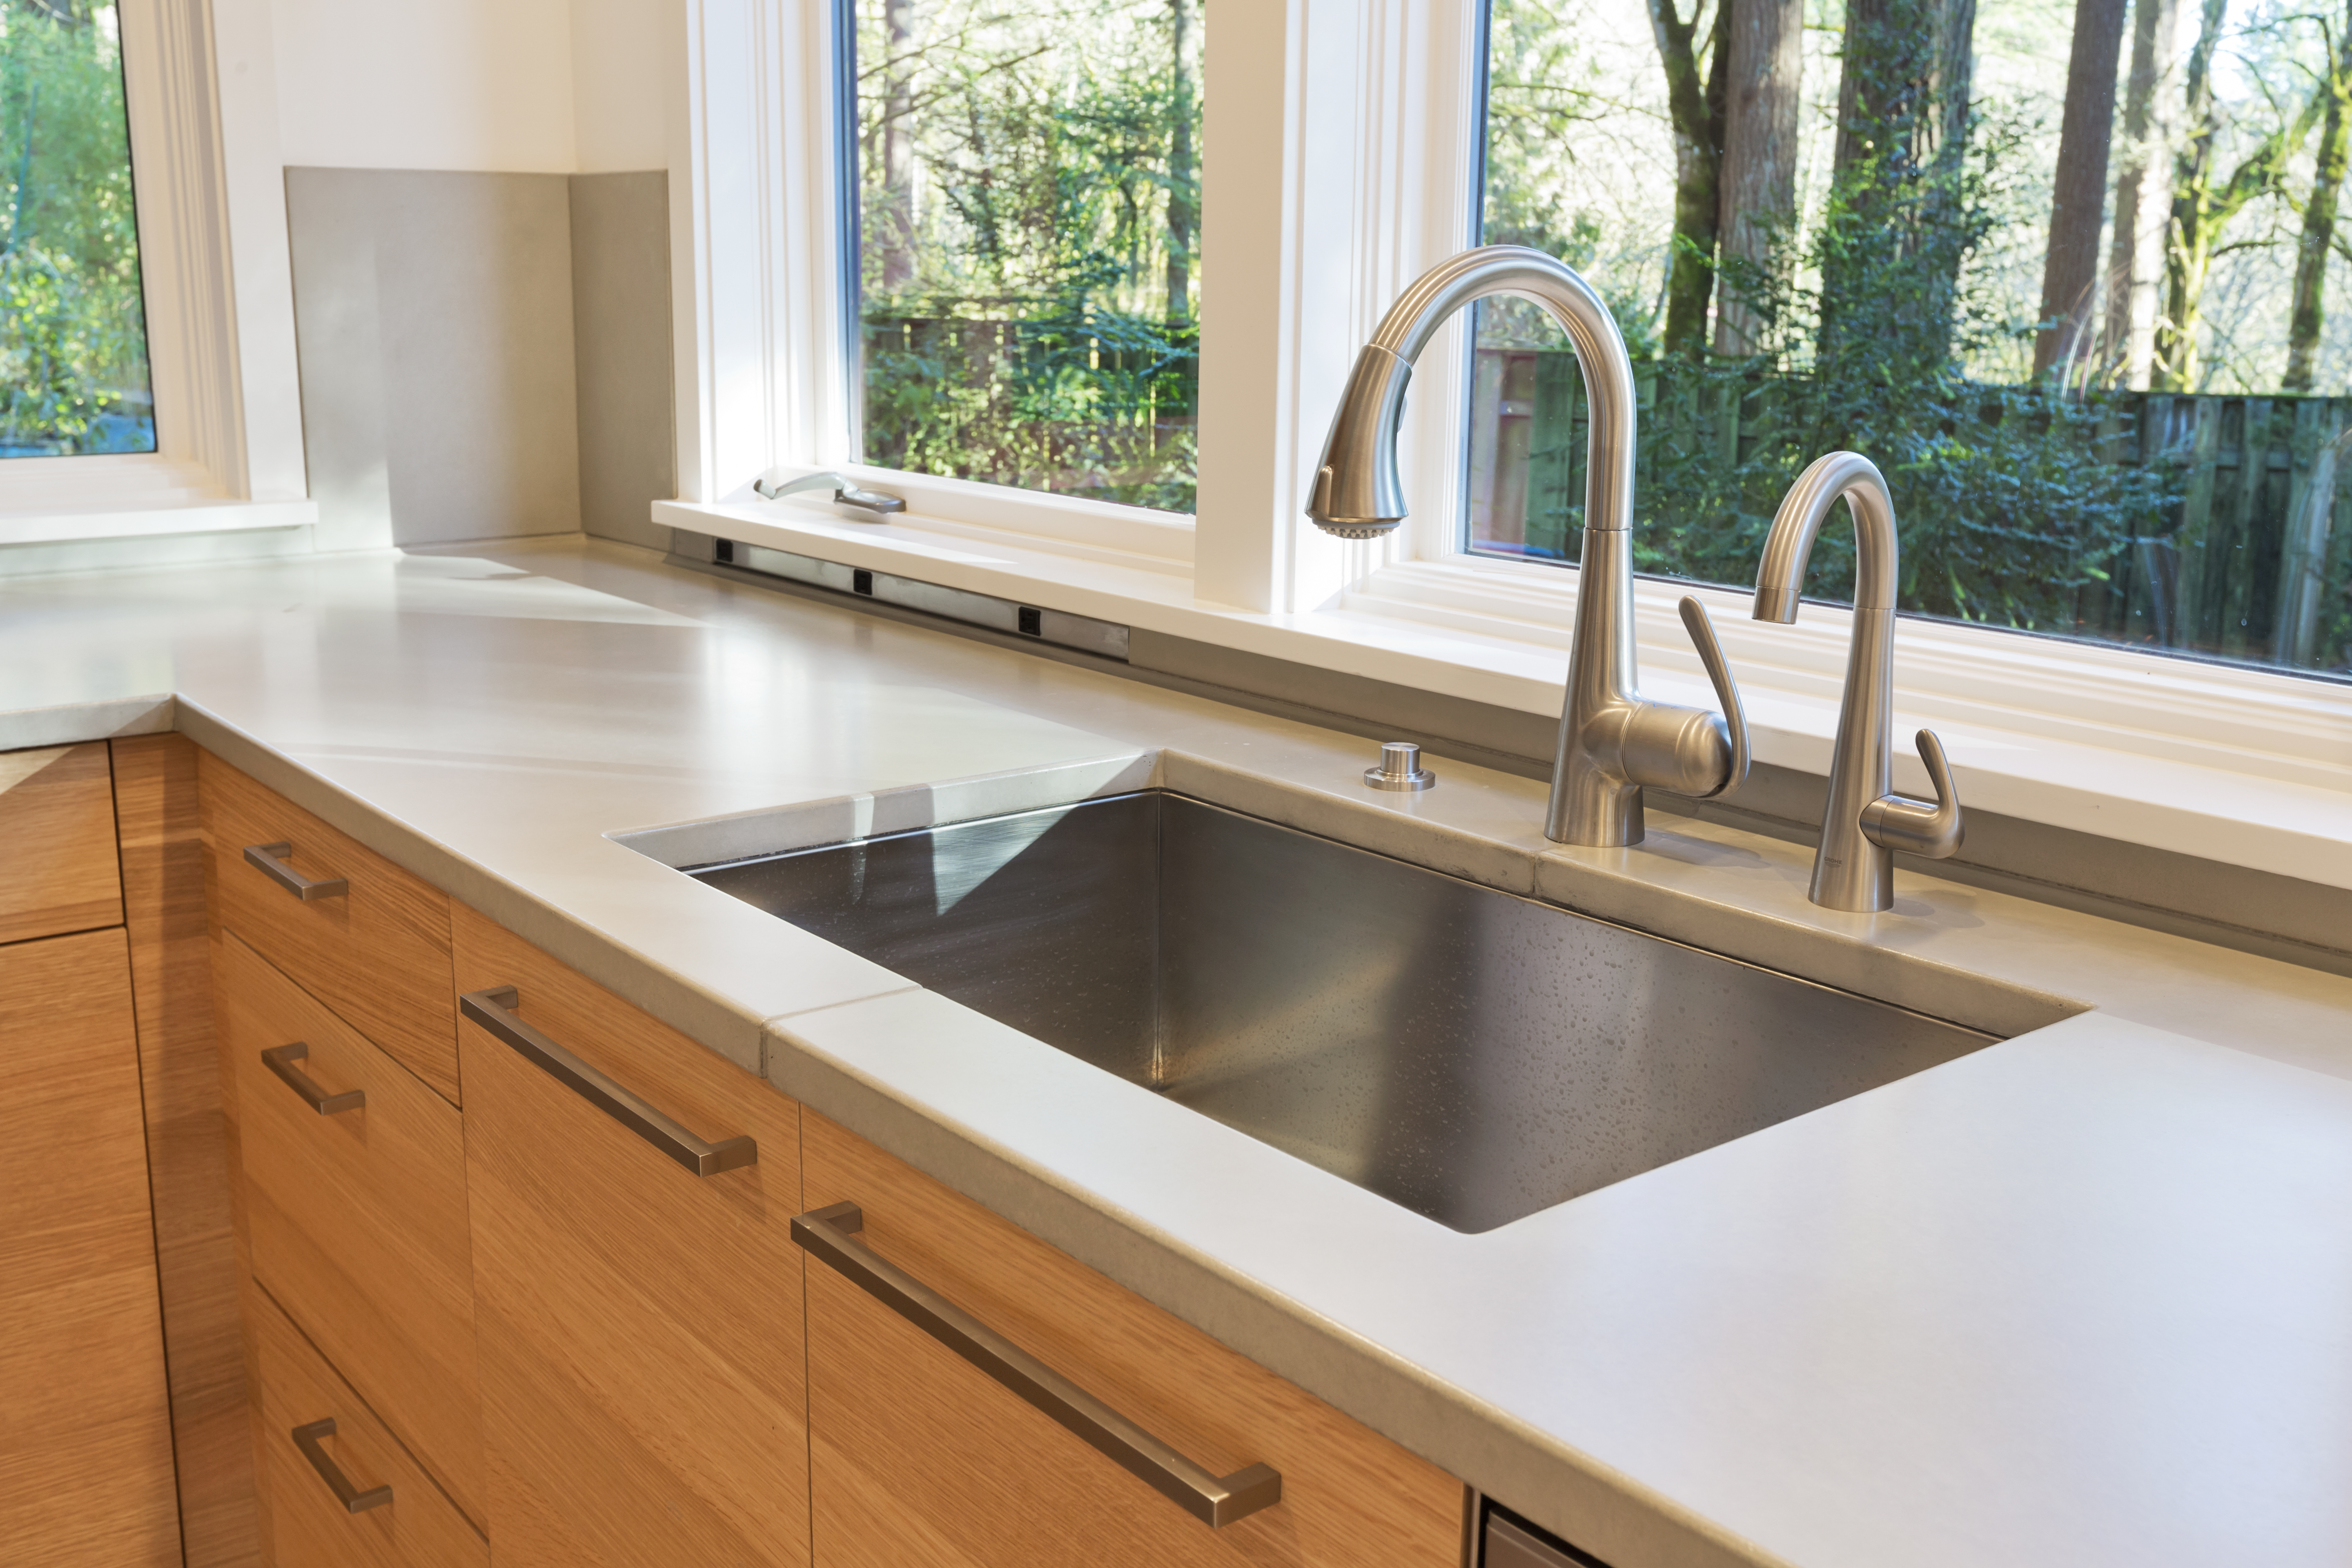 How To Fix A Leaky Kitchen Sink At The Supply Line Home Guides